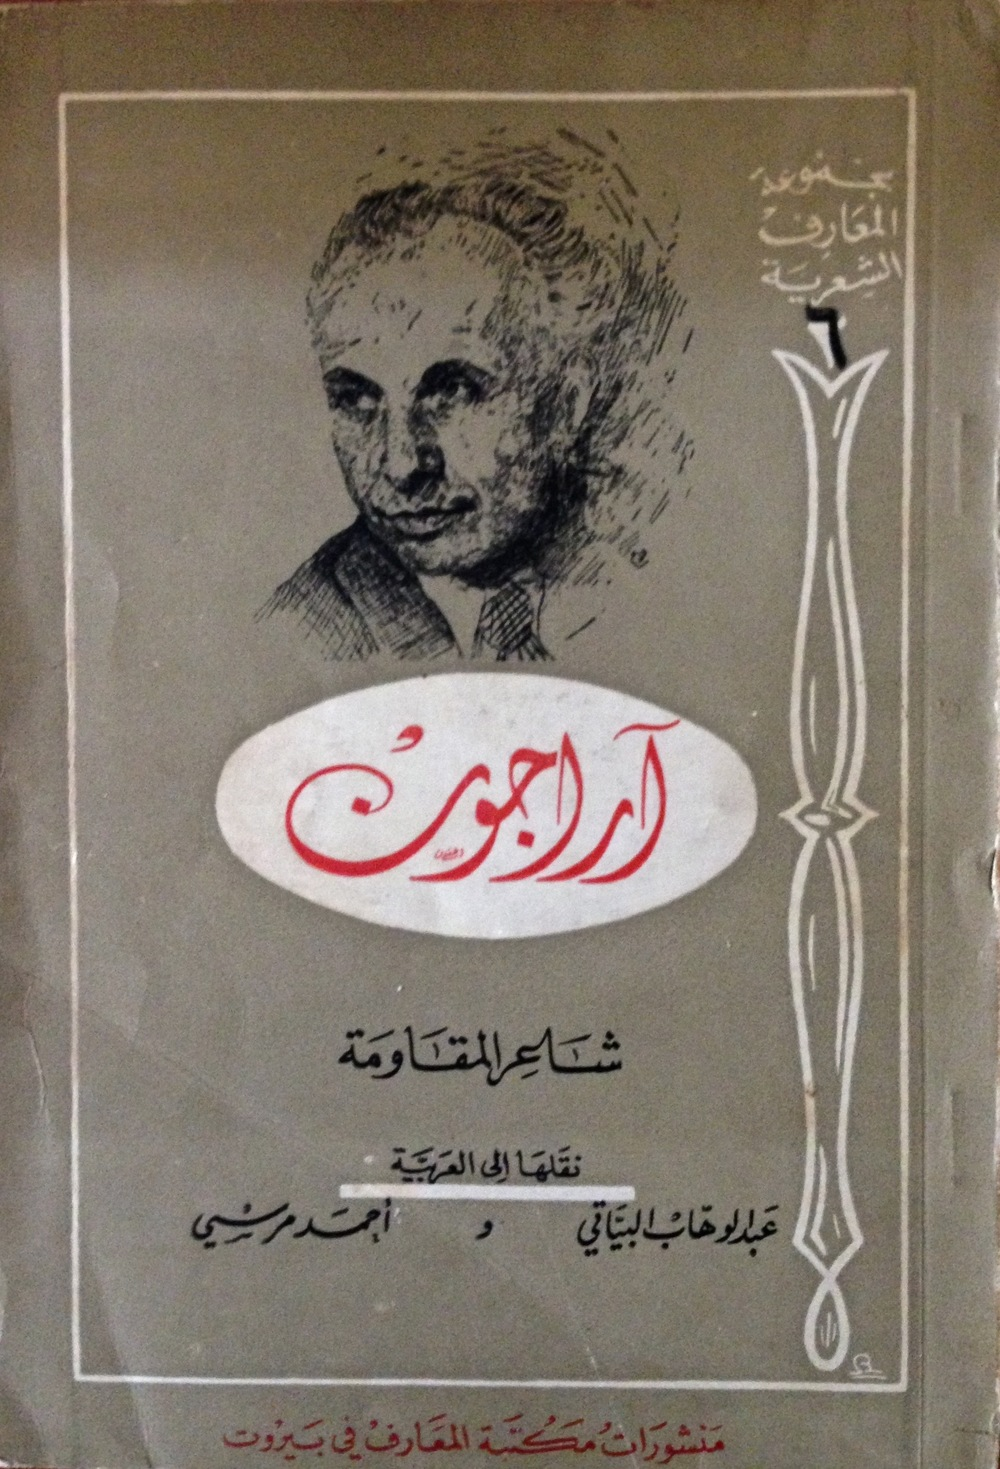 Co-translated with Abdel Wahab Al Bayati